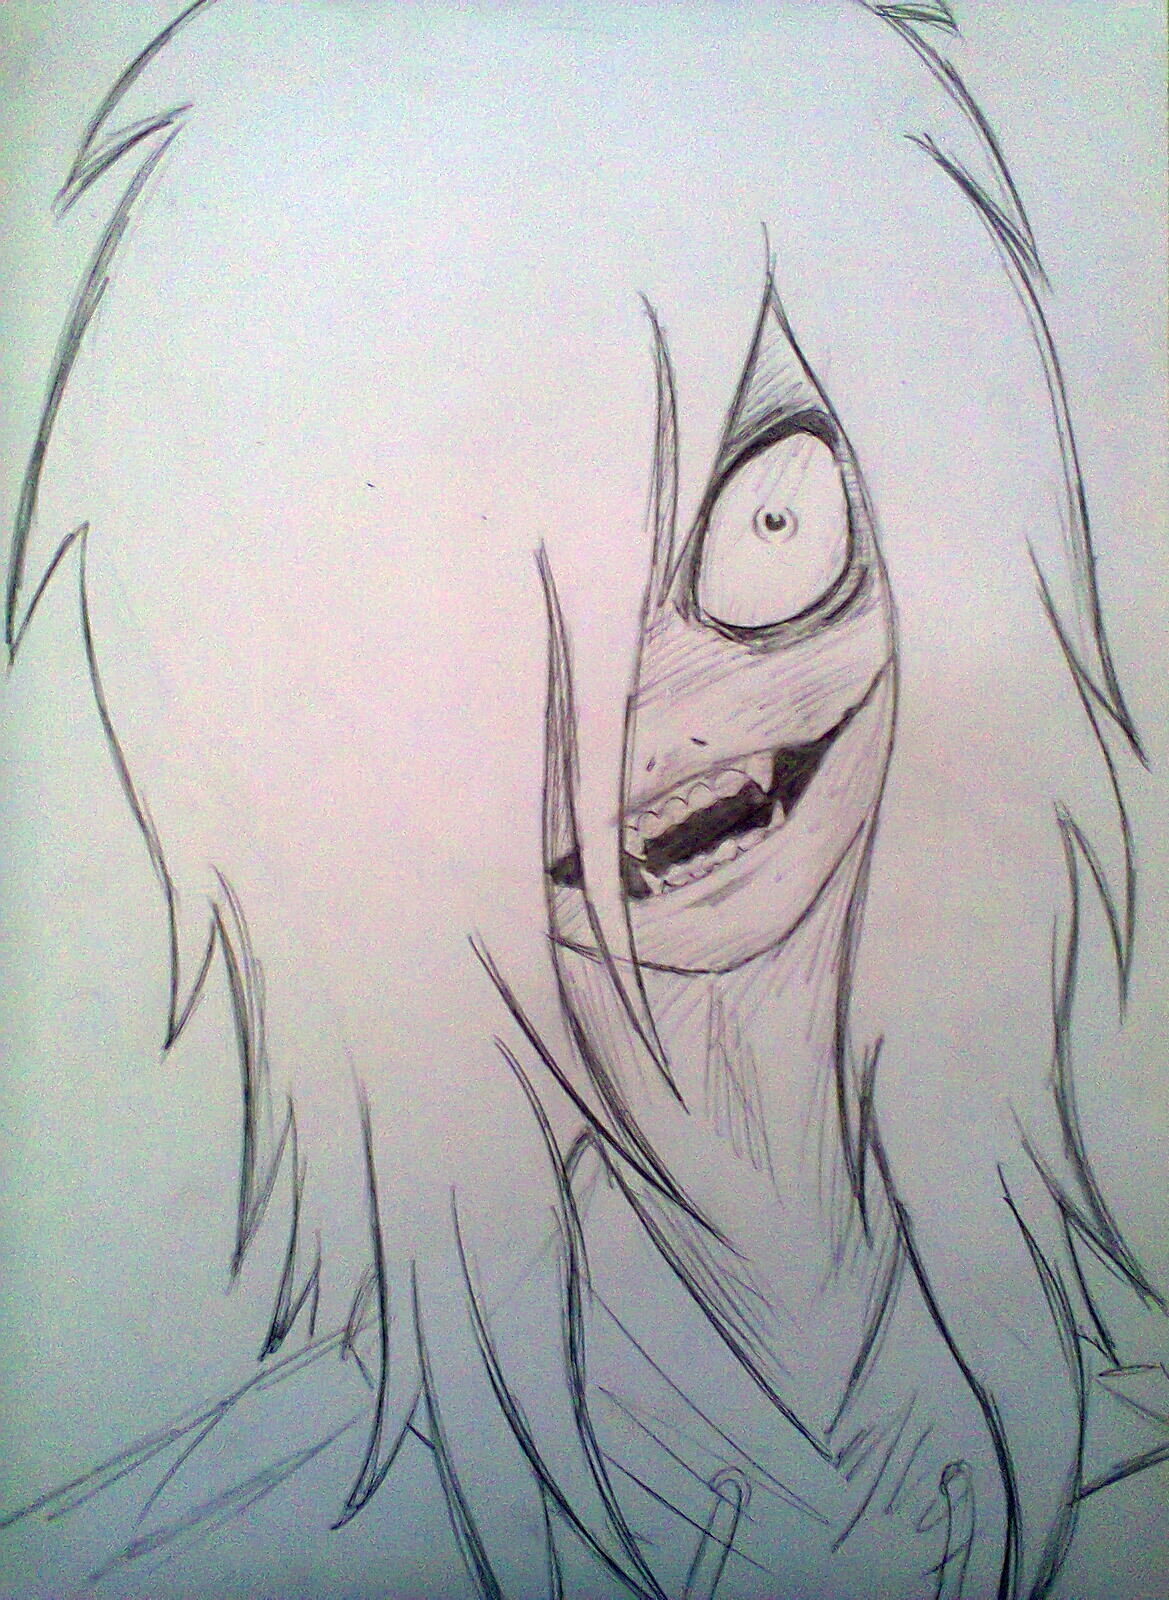 1169x1600 Jeff The Killer Drawing Drawn Jeff The Killer Creepypasta